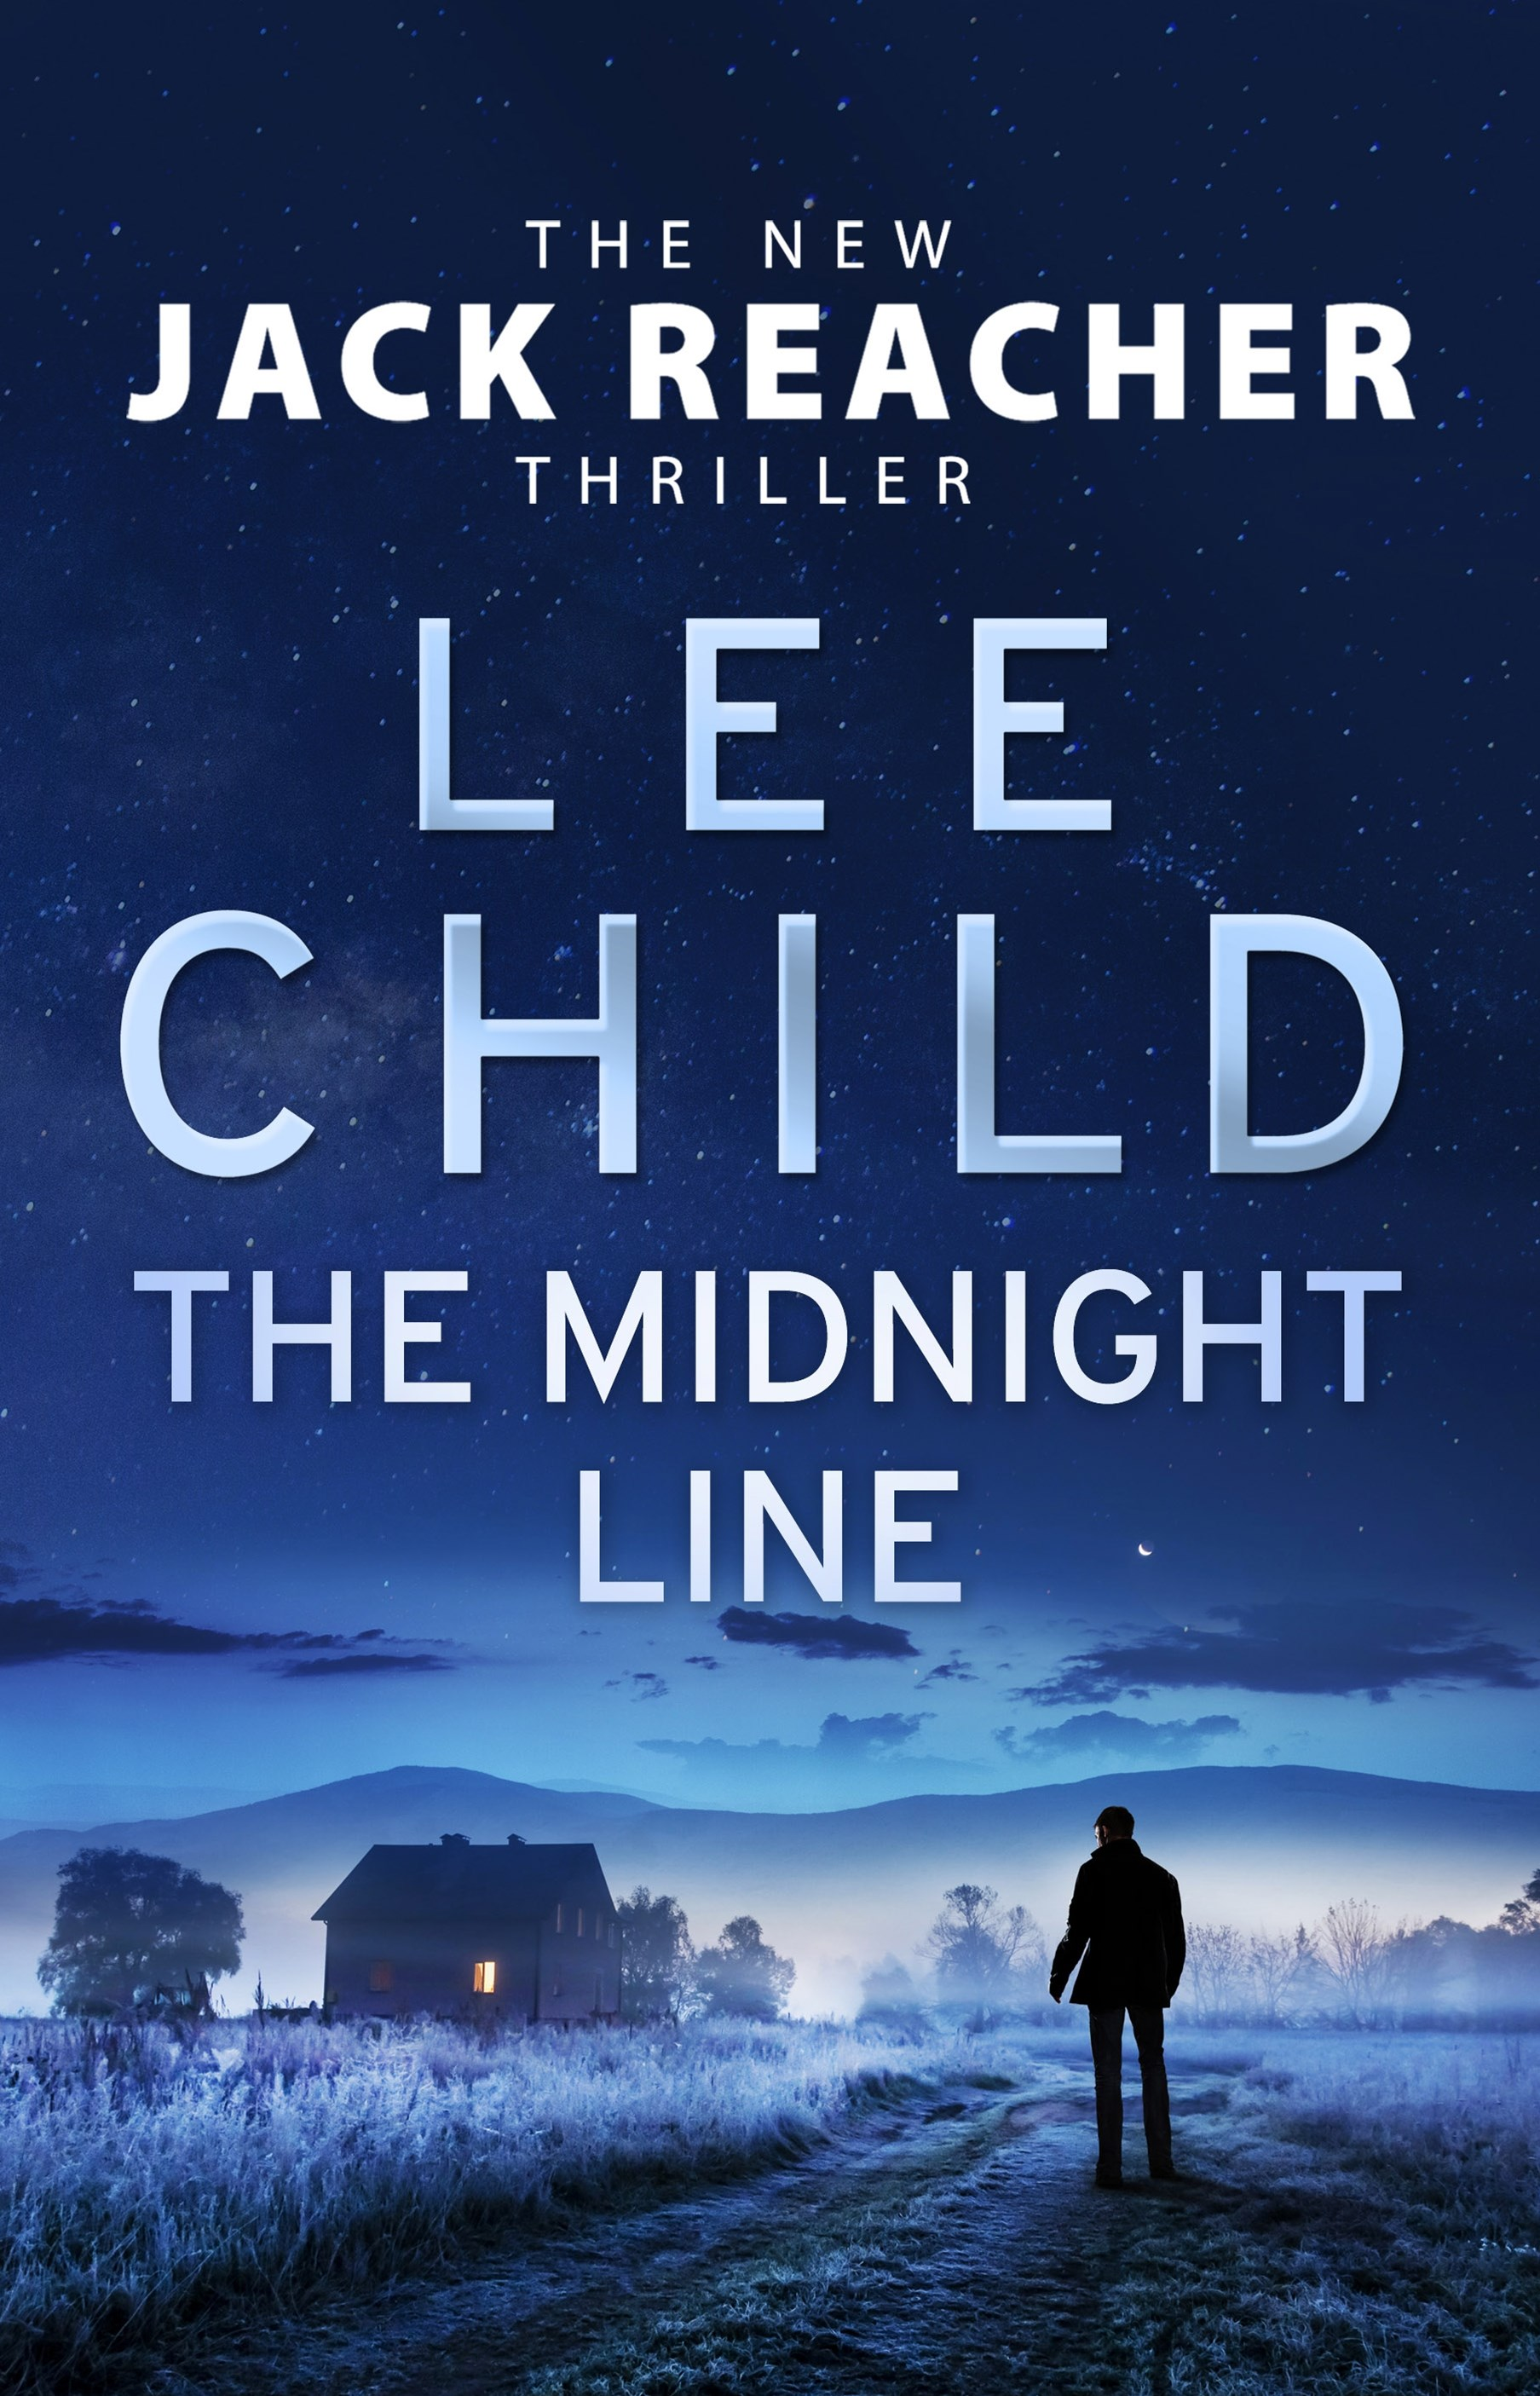 The Midnight Line (Book 22, Jack Reacher)